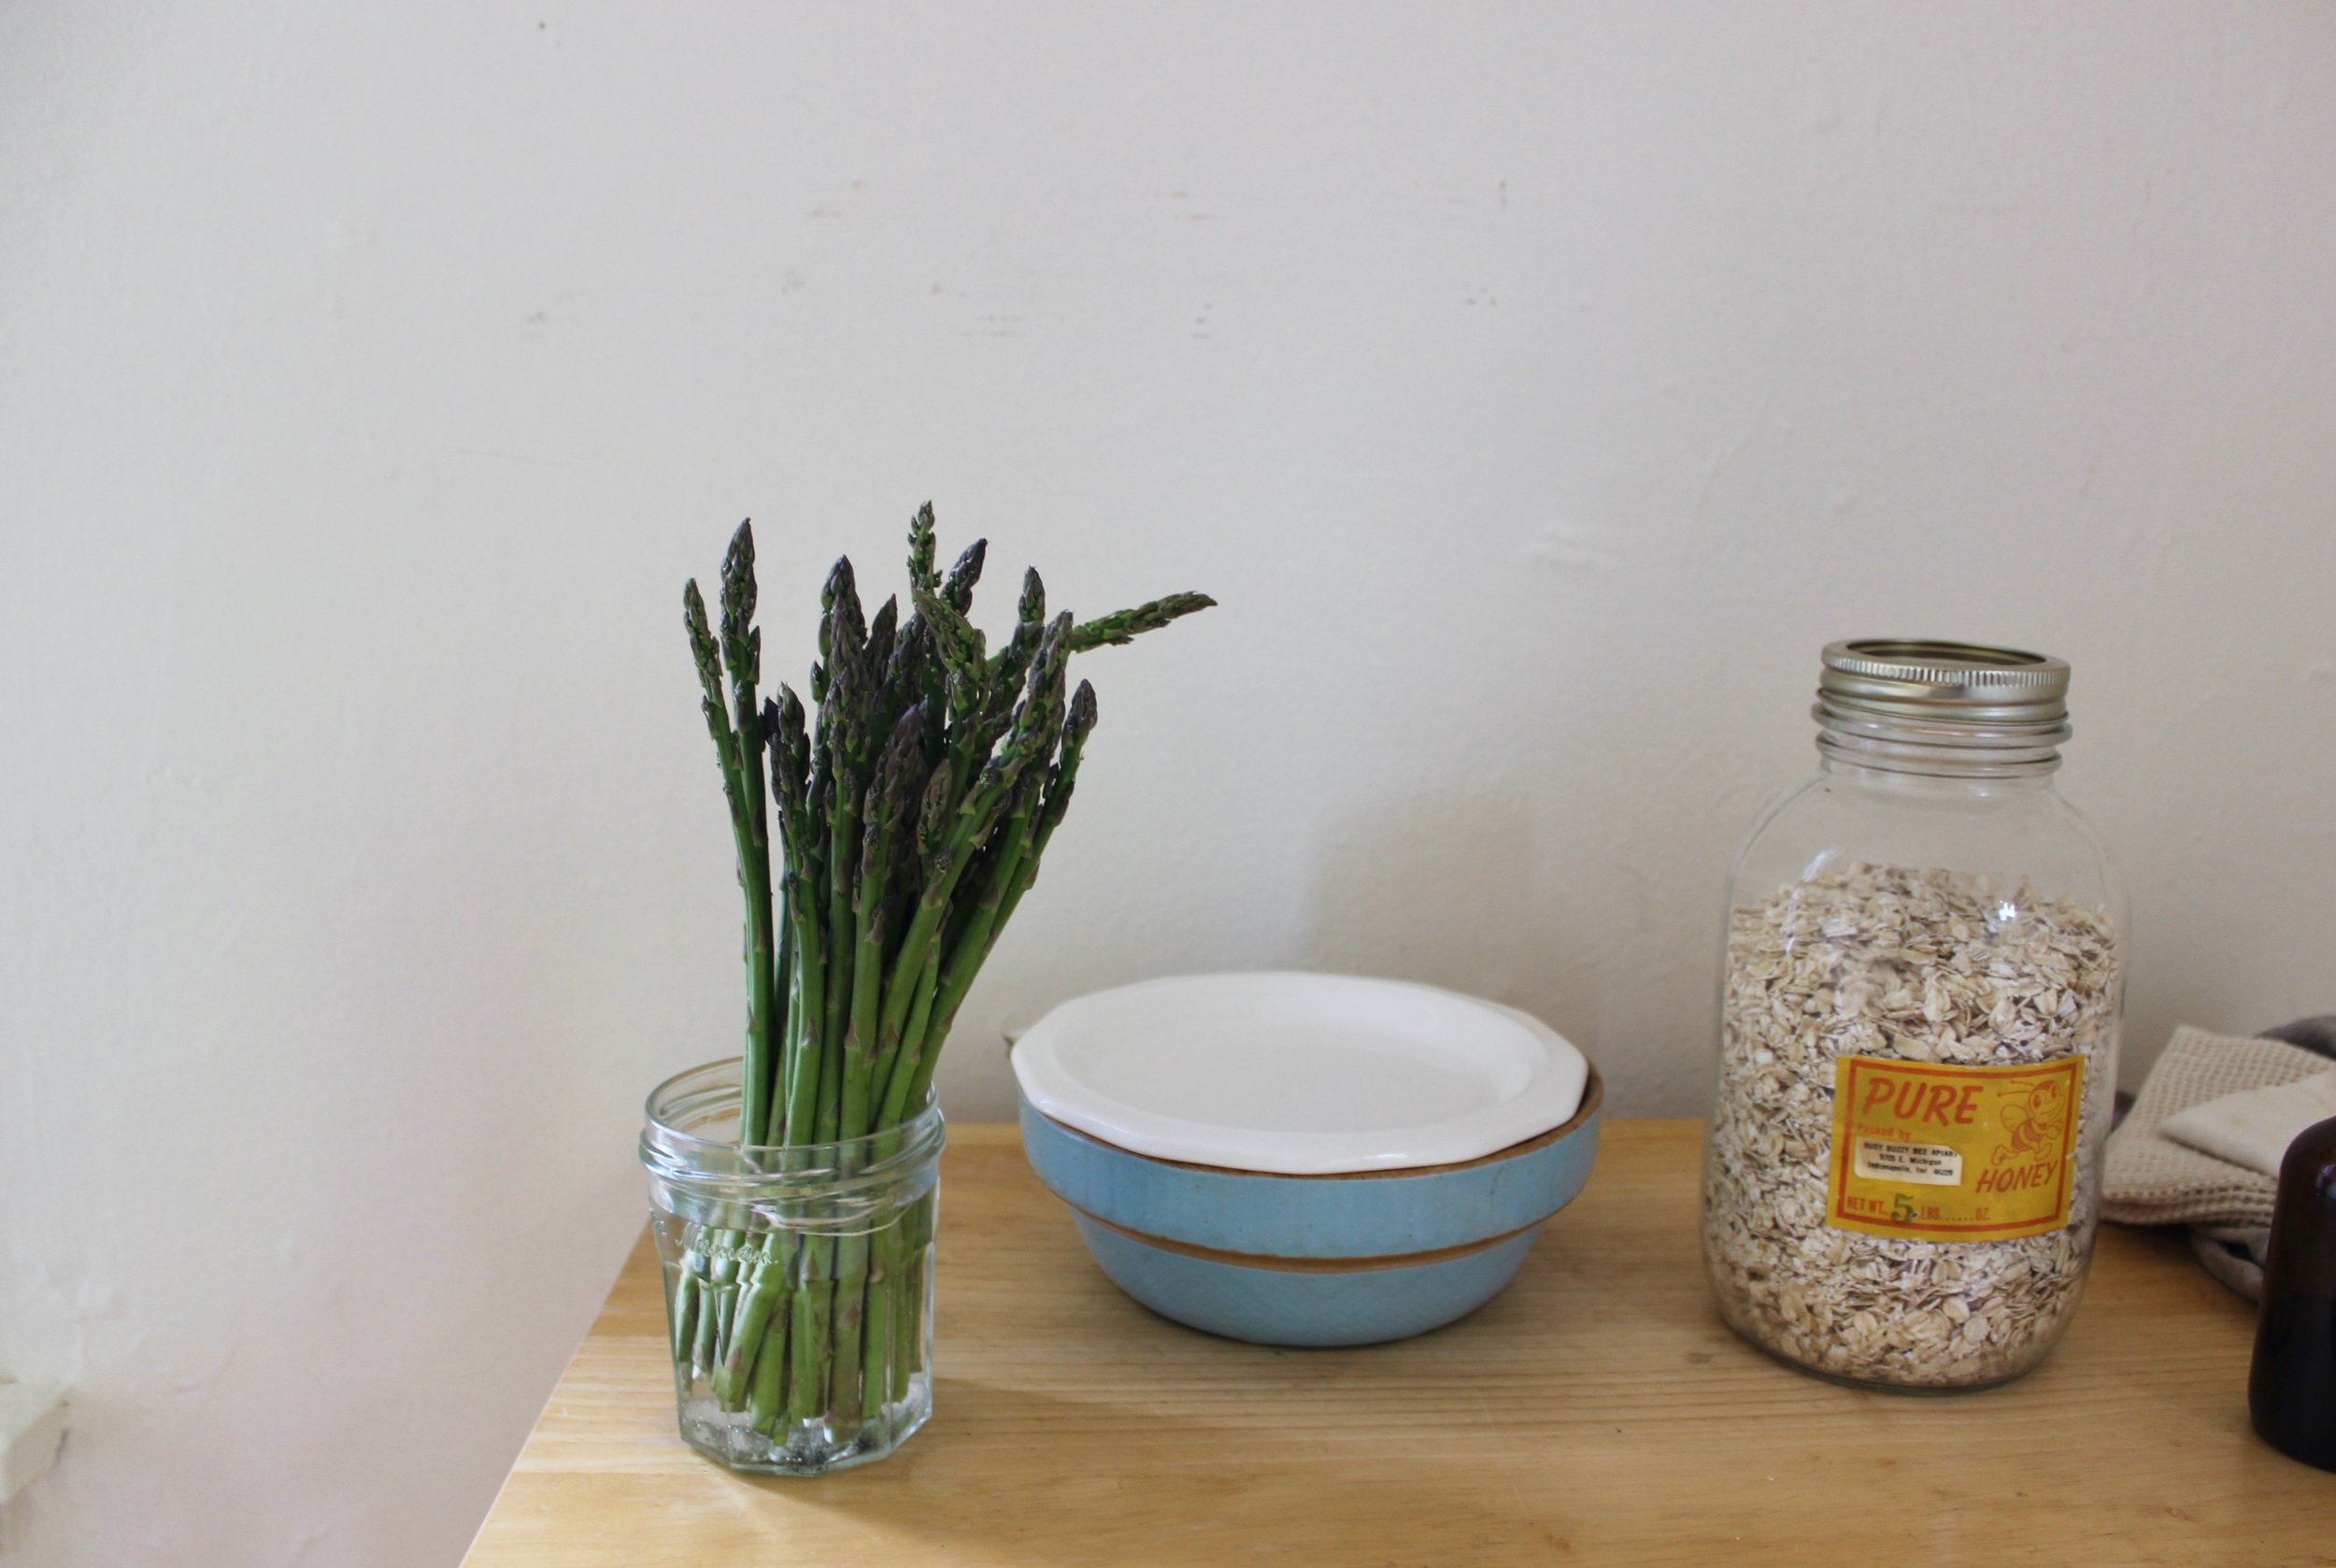 Plastic-free food storage for a zero waste kitchen, without buying anything new | Litterless